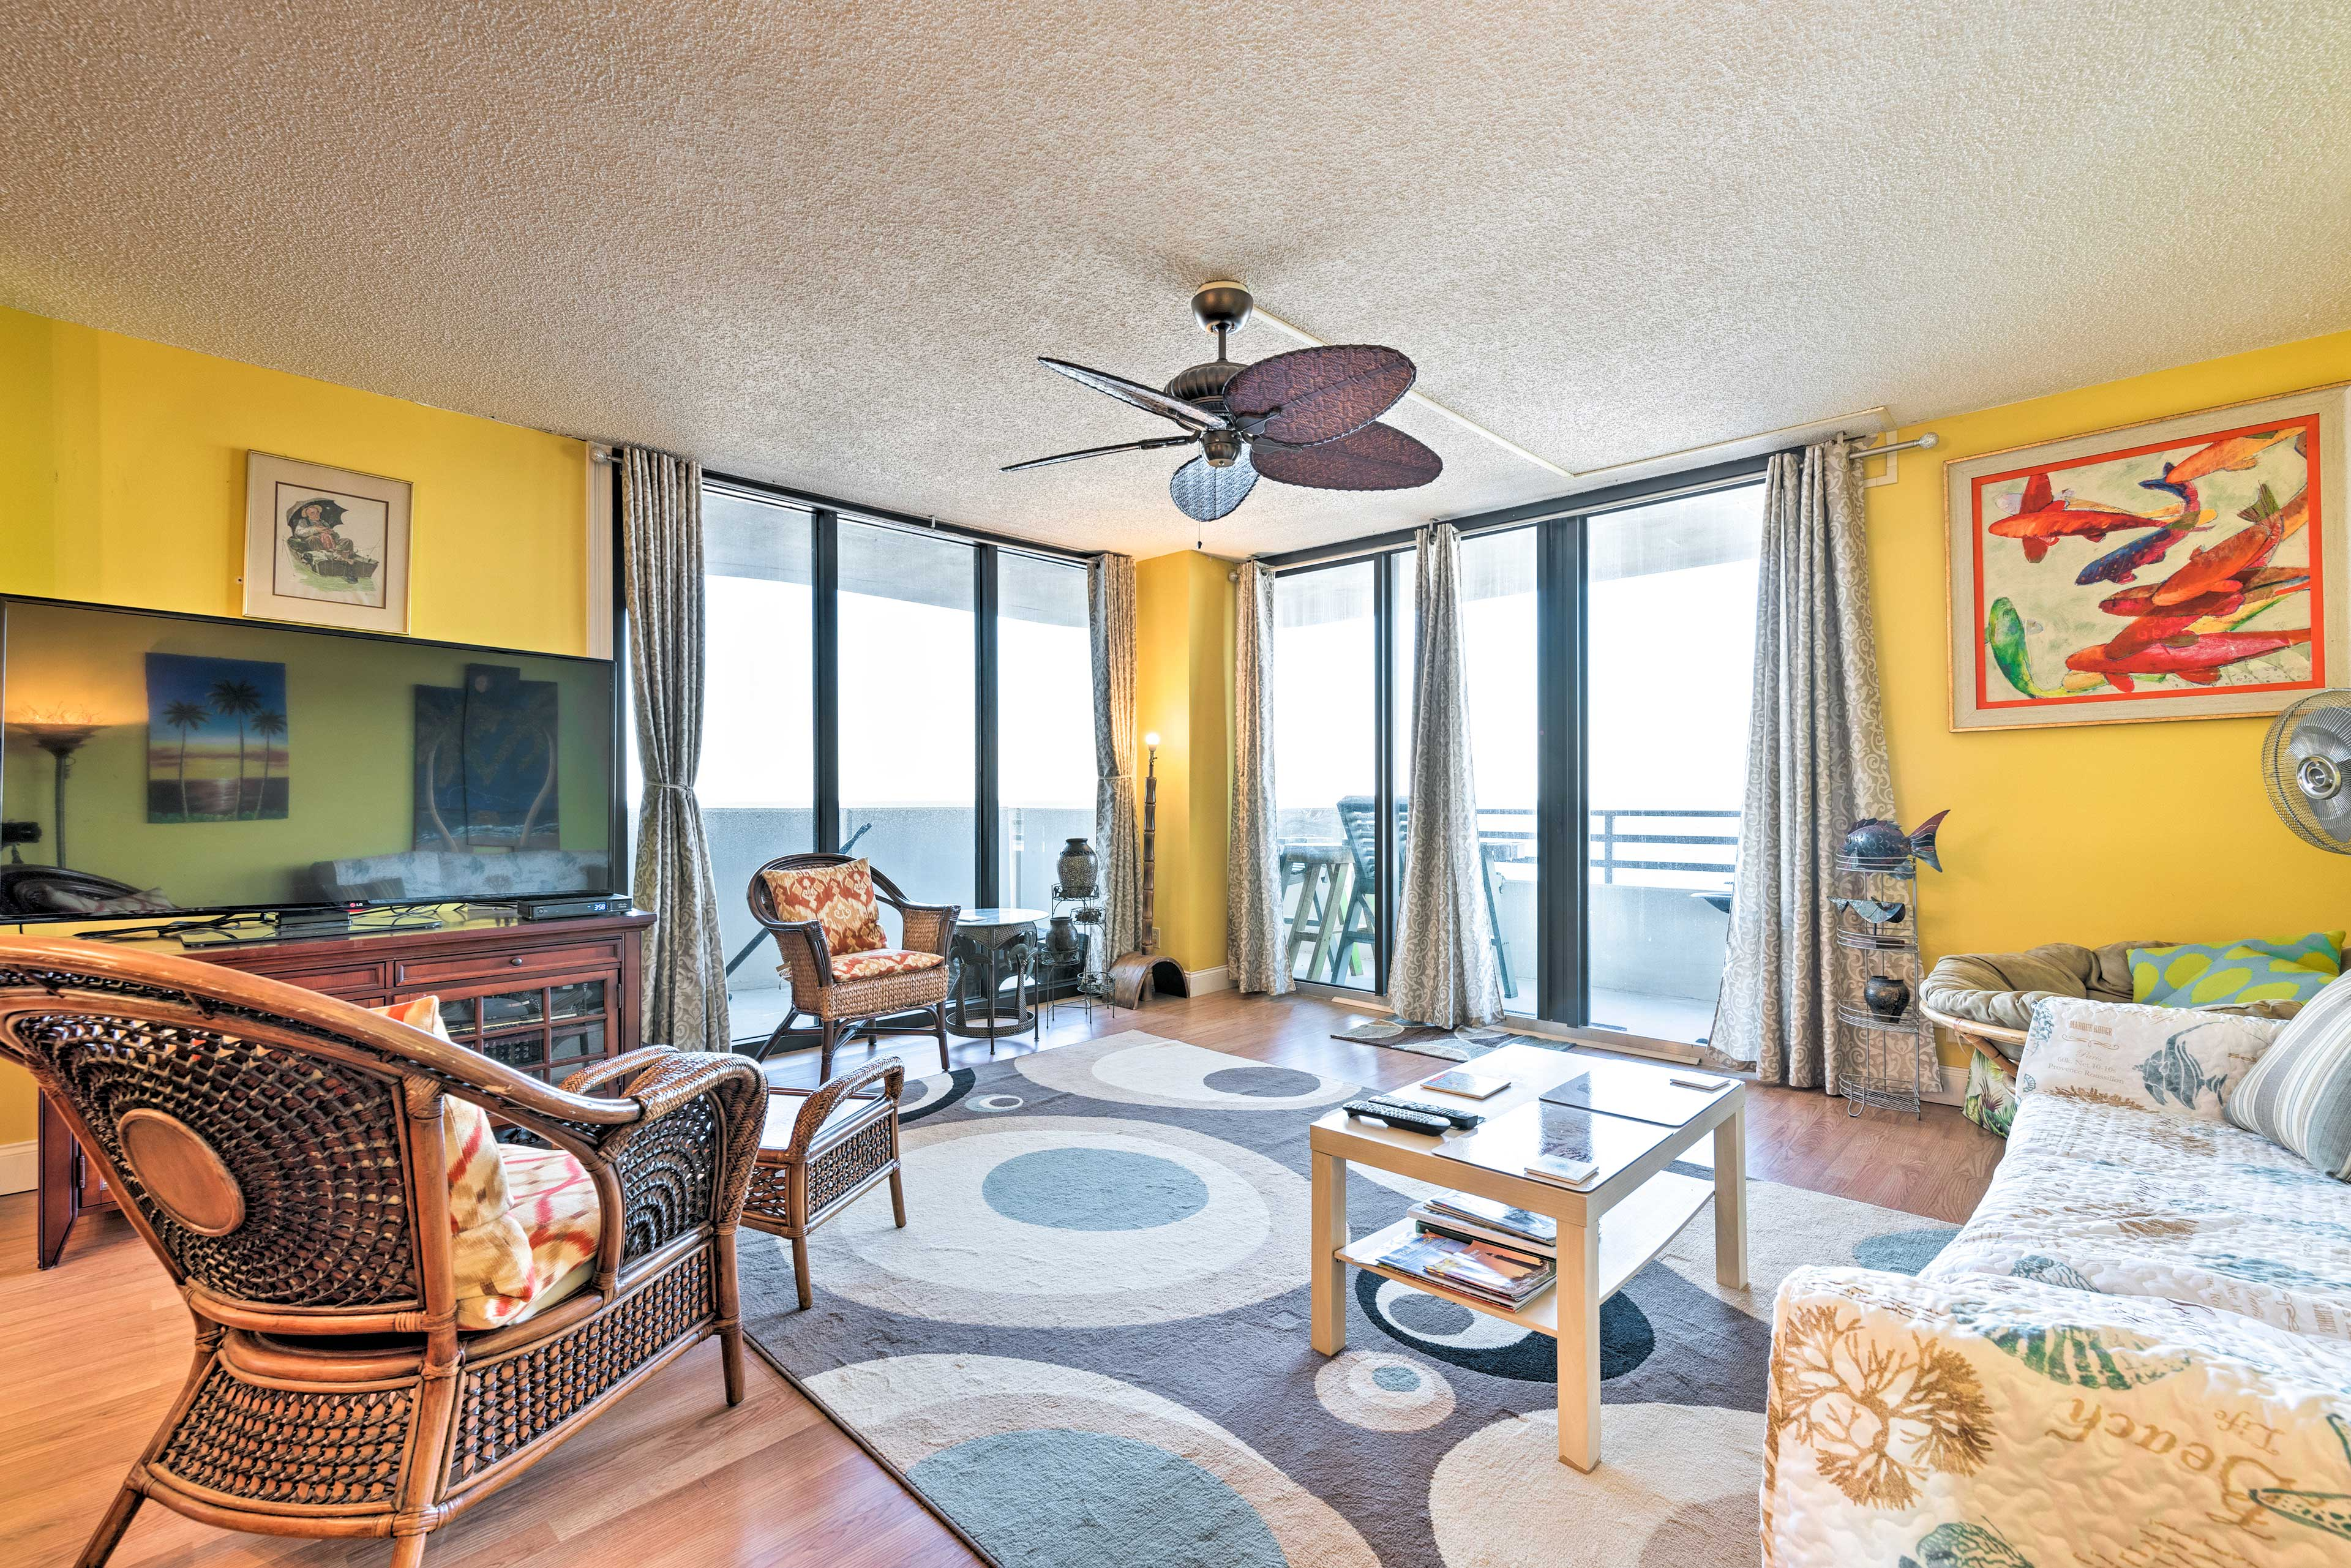 The eclectic interior boasts 1,700 square feet for up to 6 guests.